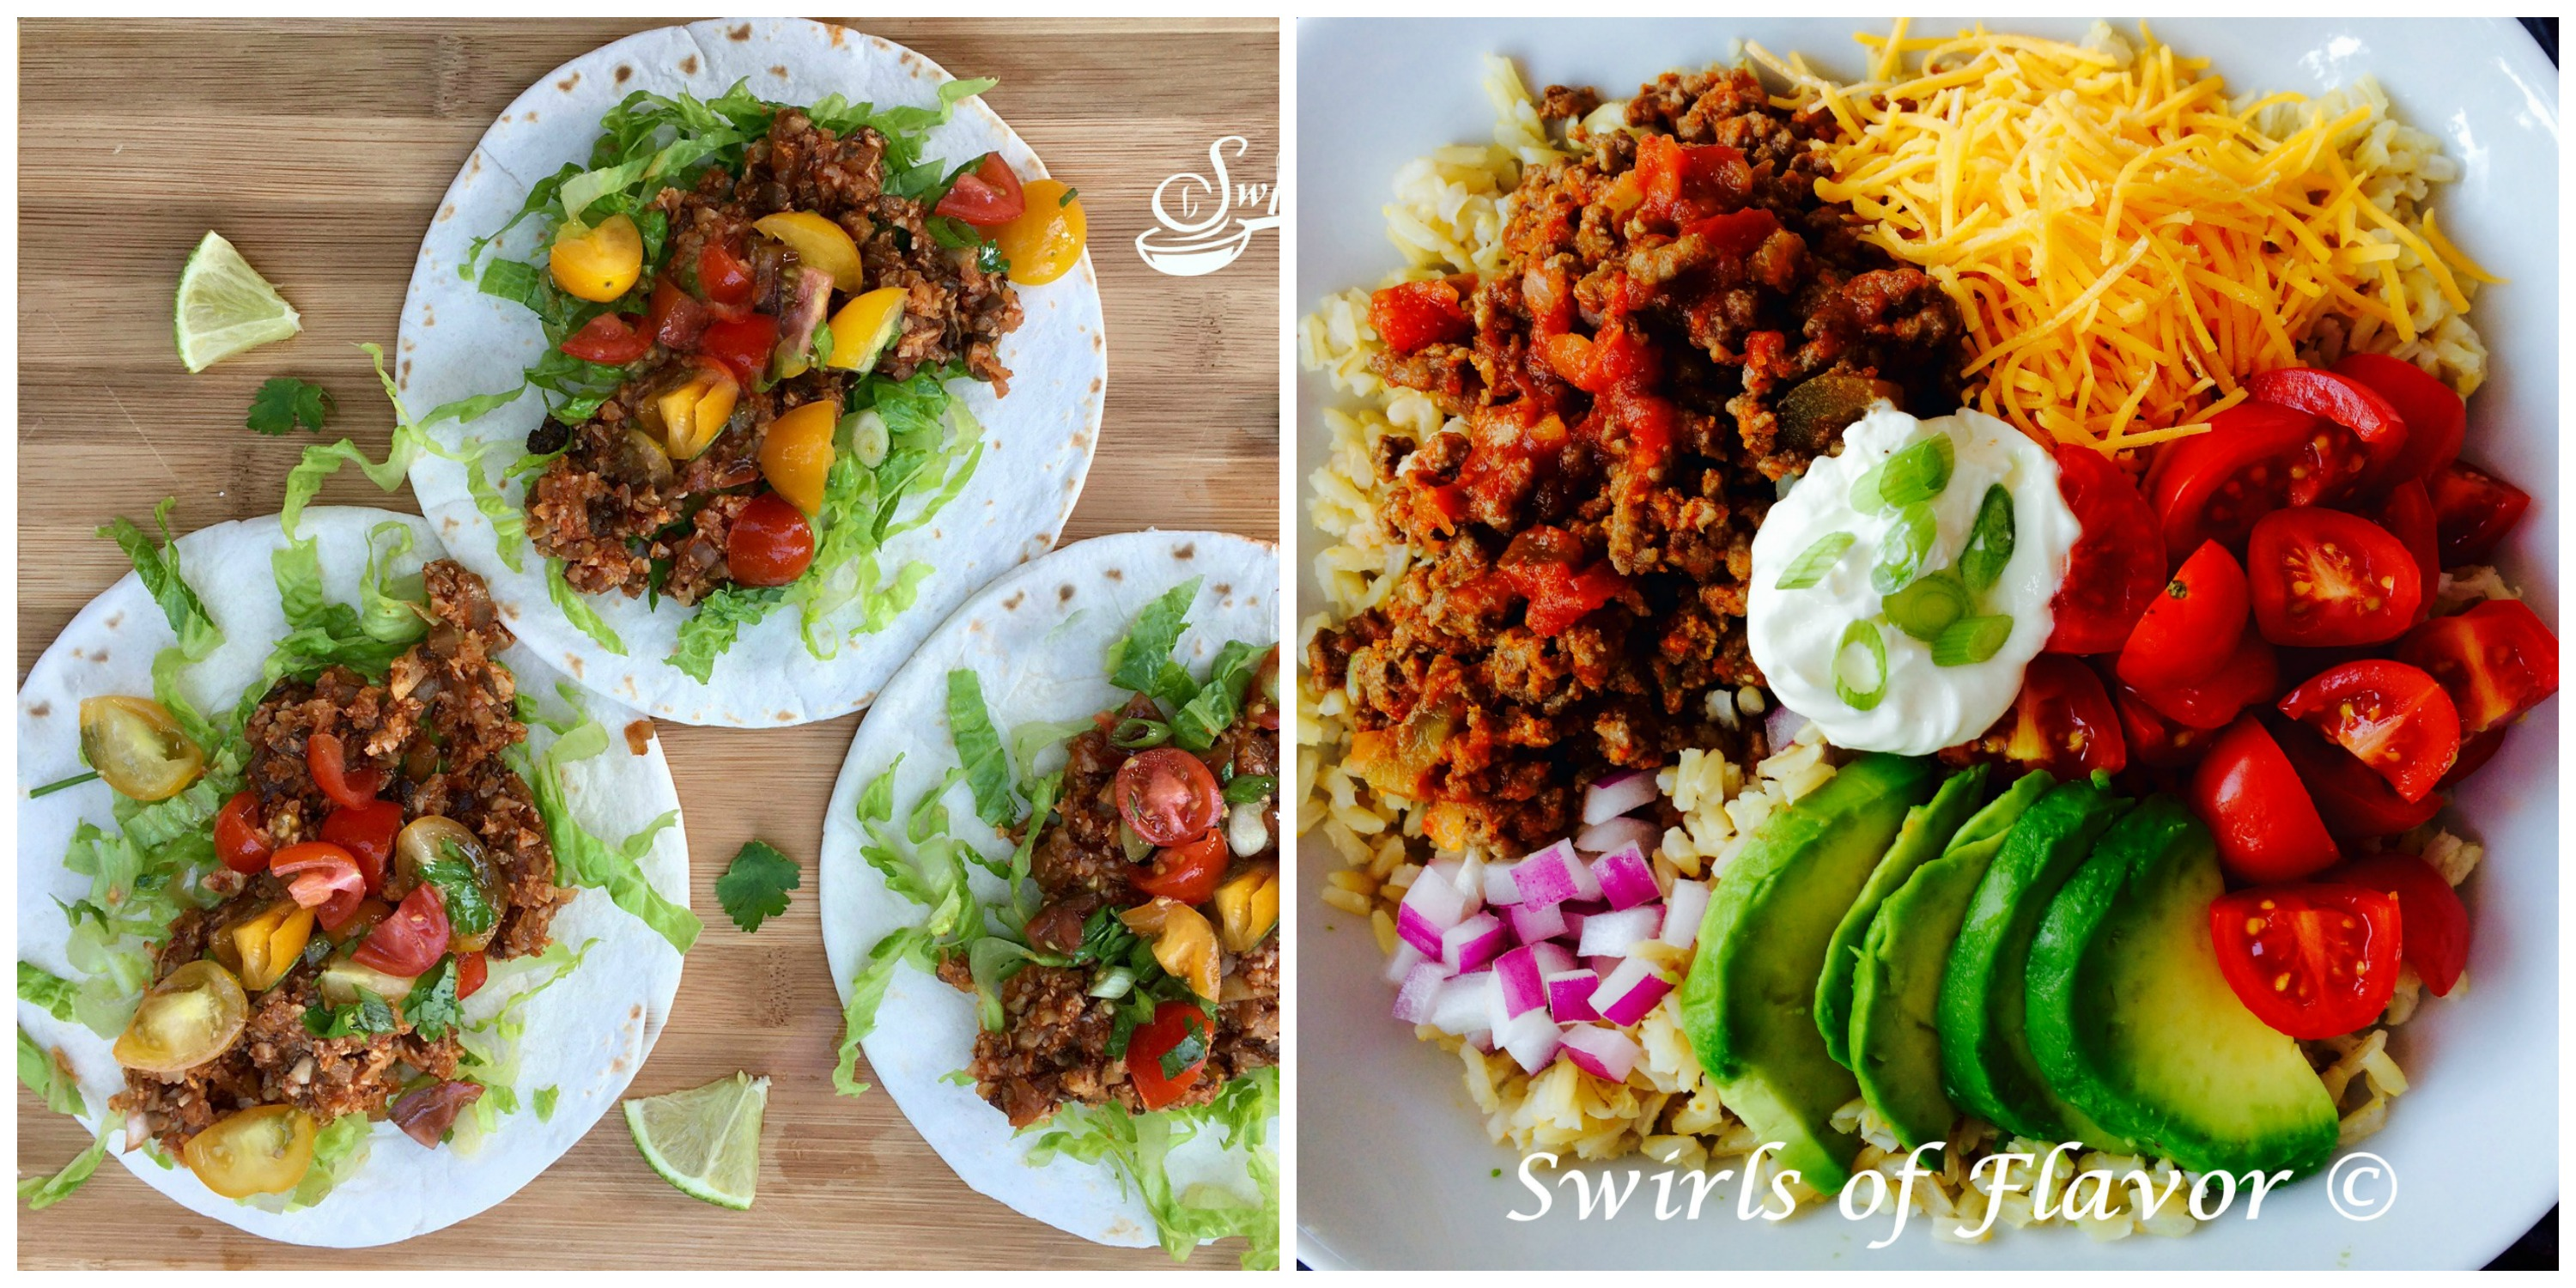 Cauliflower Tacos and Brown Rice Taco Bowl